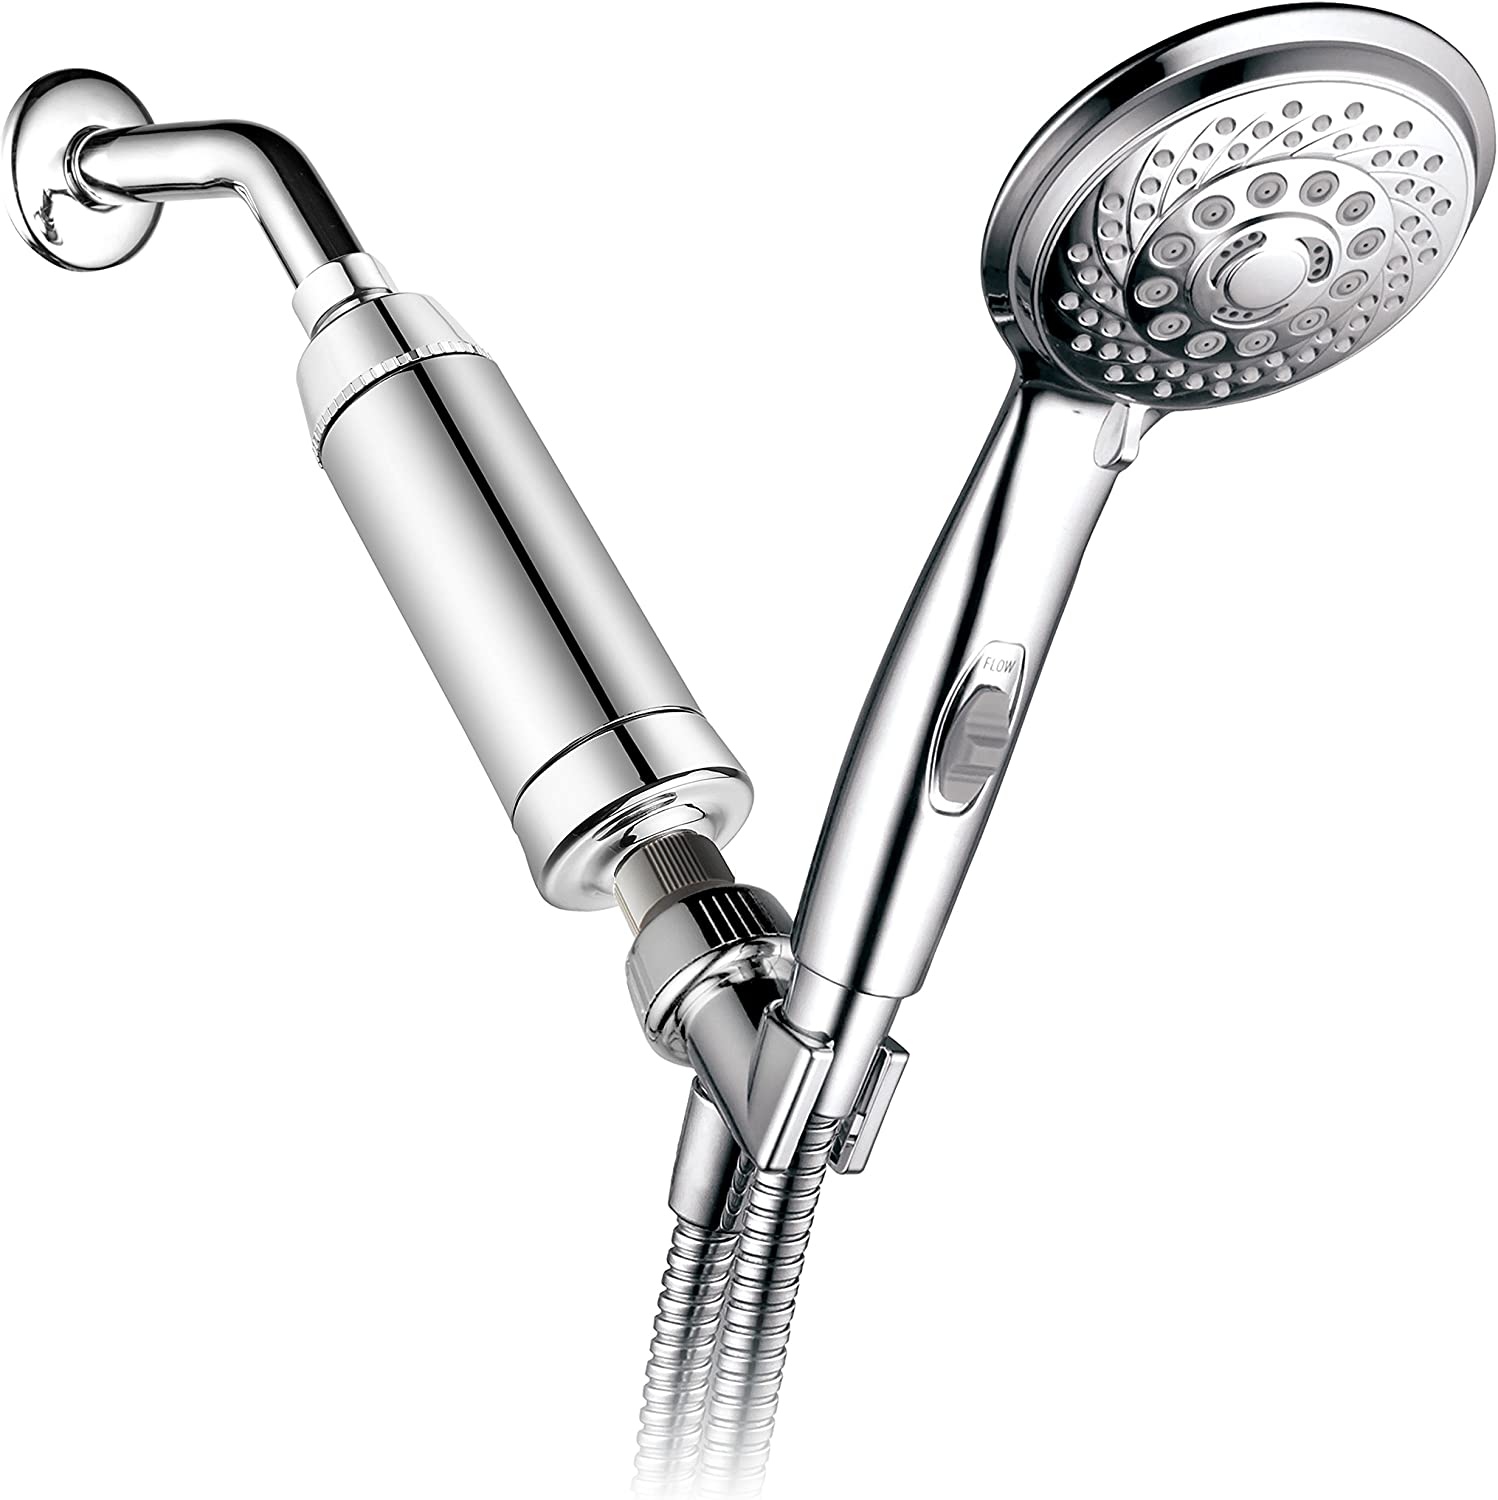 Hotel Spa 7-Setting Handheld Shower Filter